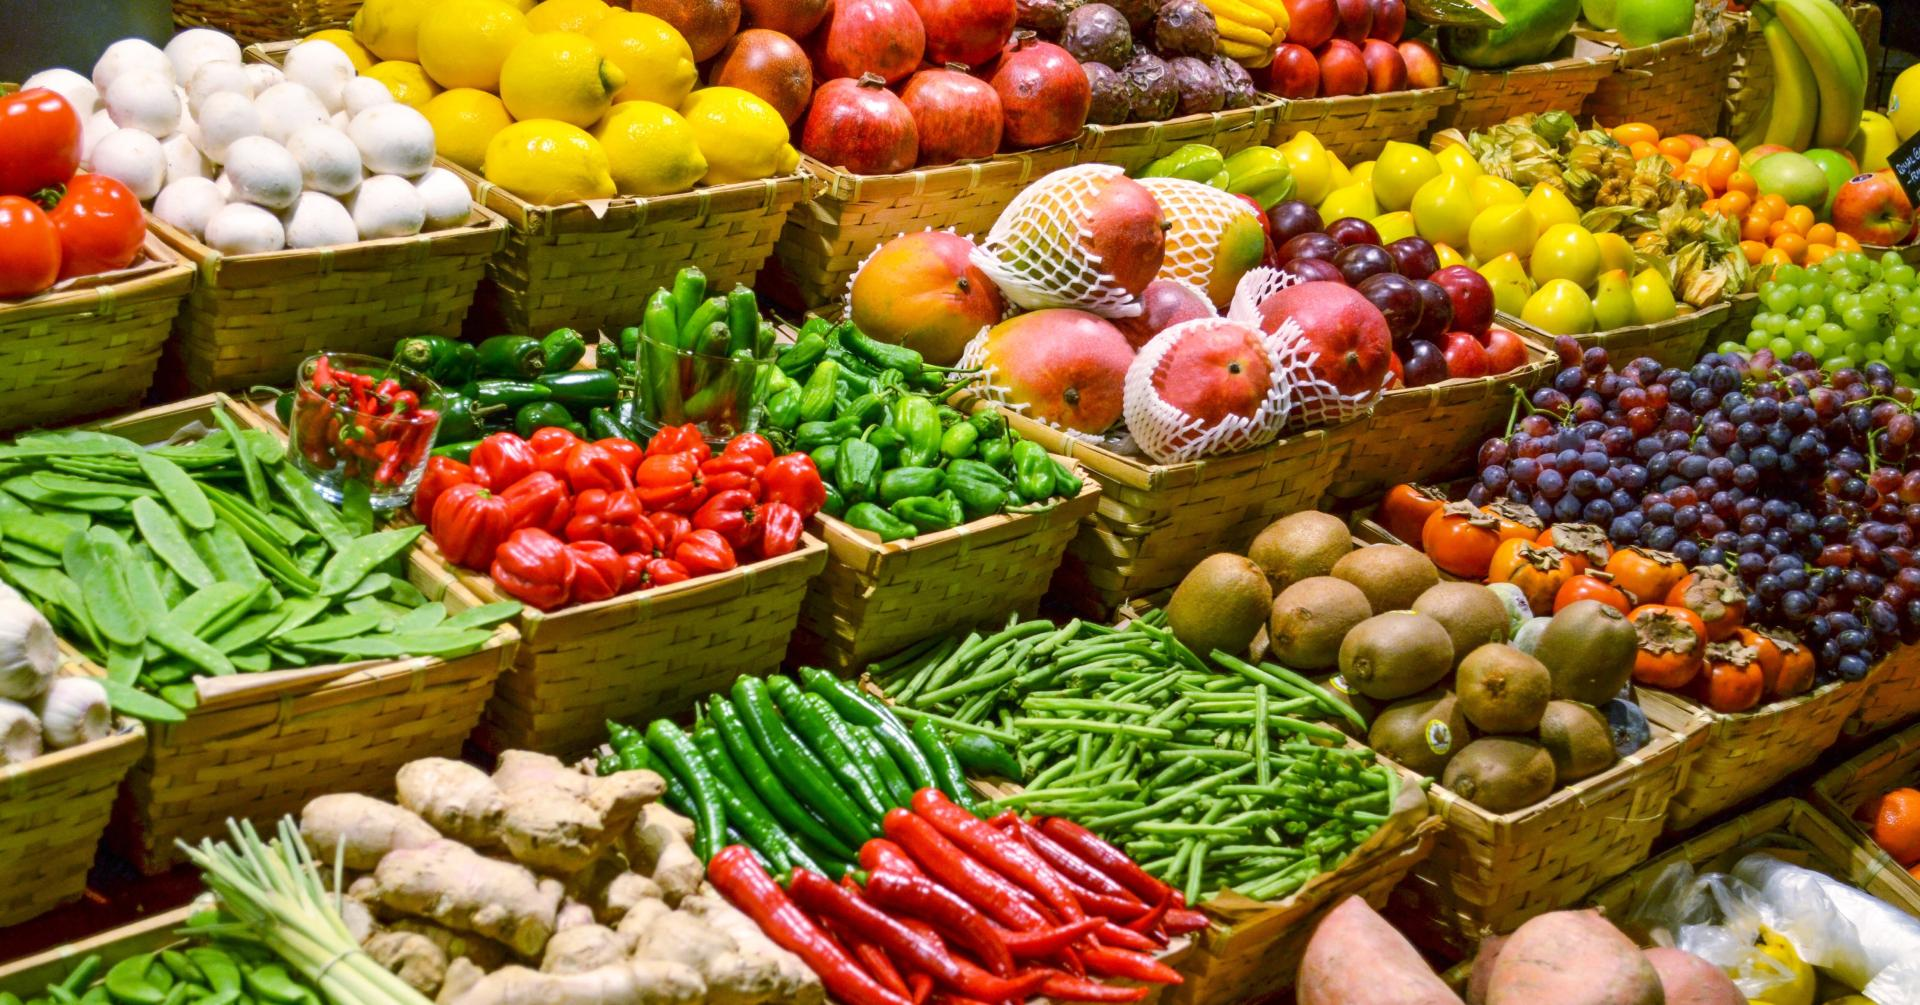 Kazakhstan introduces forward purchase of agriculture products